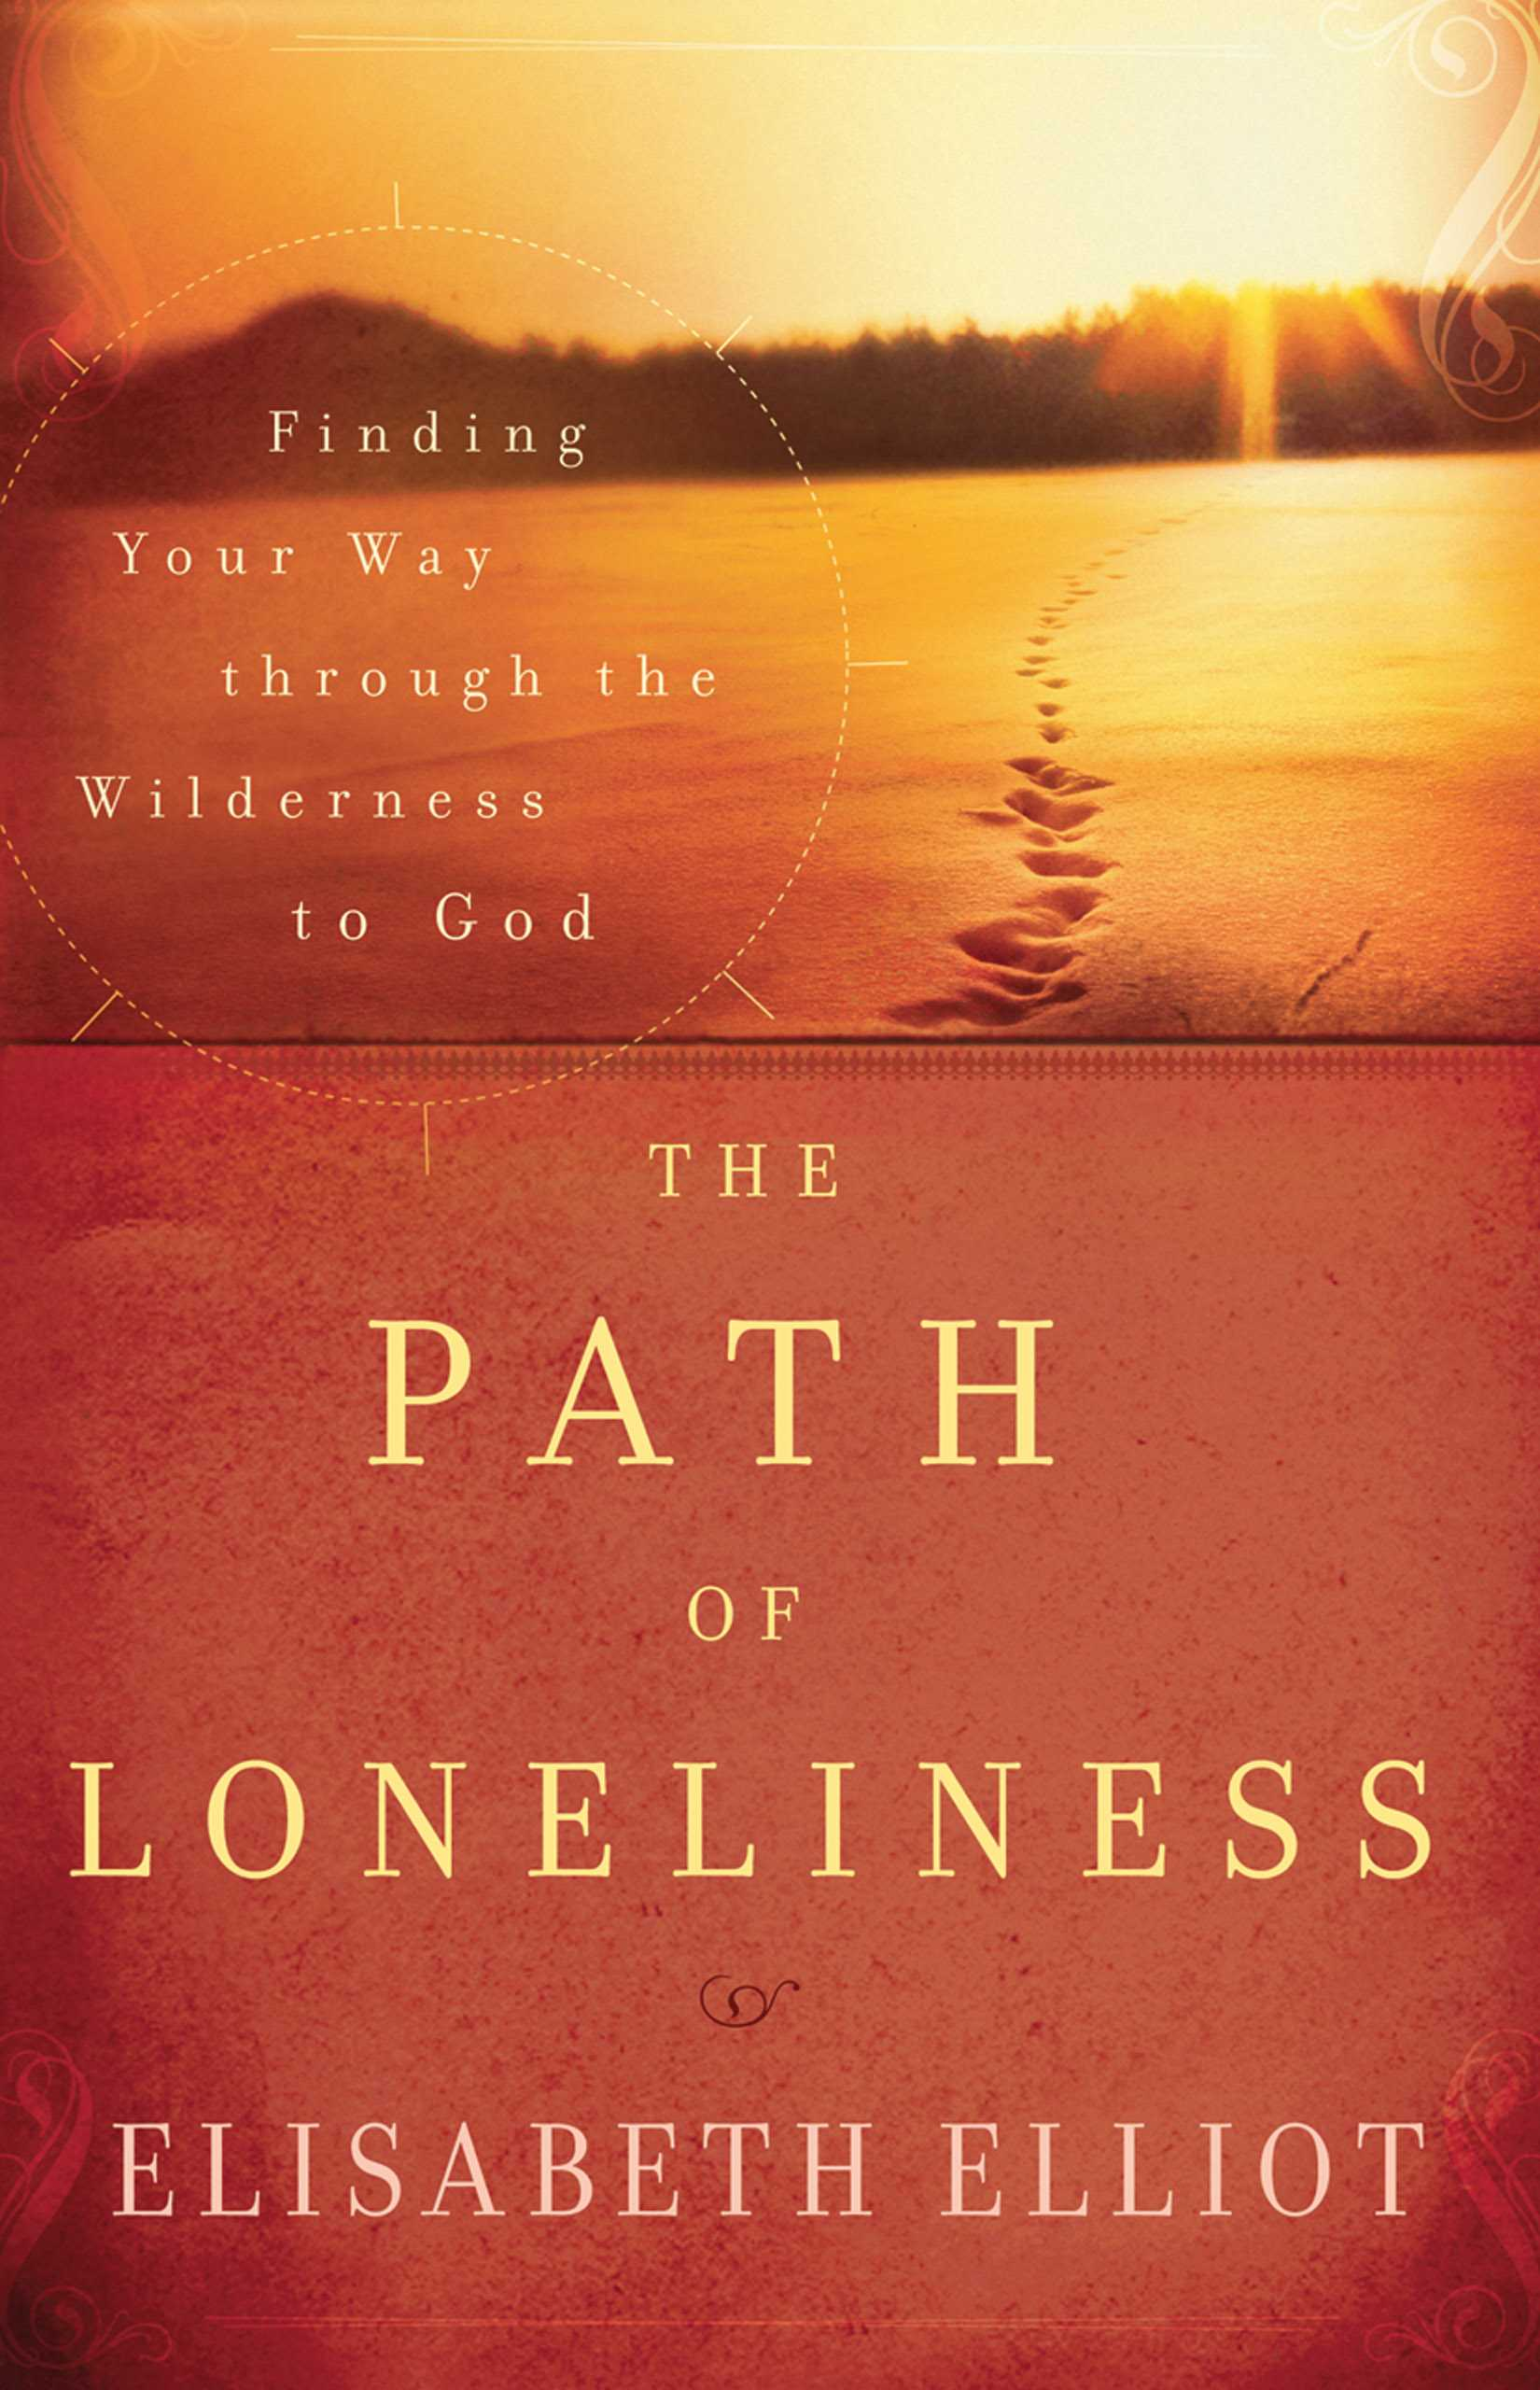 The Path of Loneliness: Finding Your Way Through the Wilderness to God (Paperback)